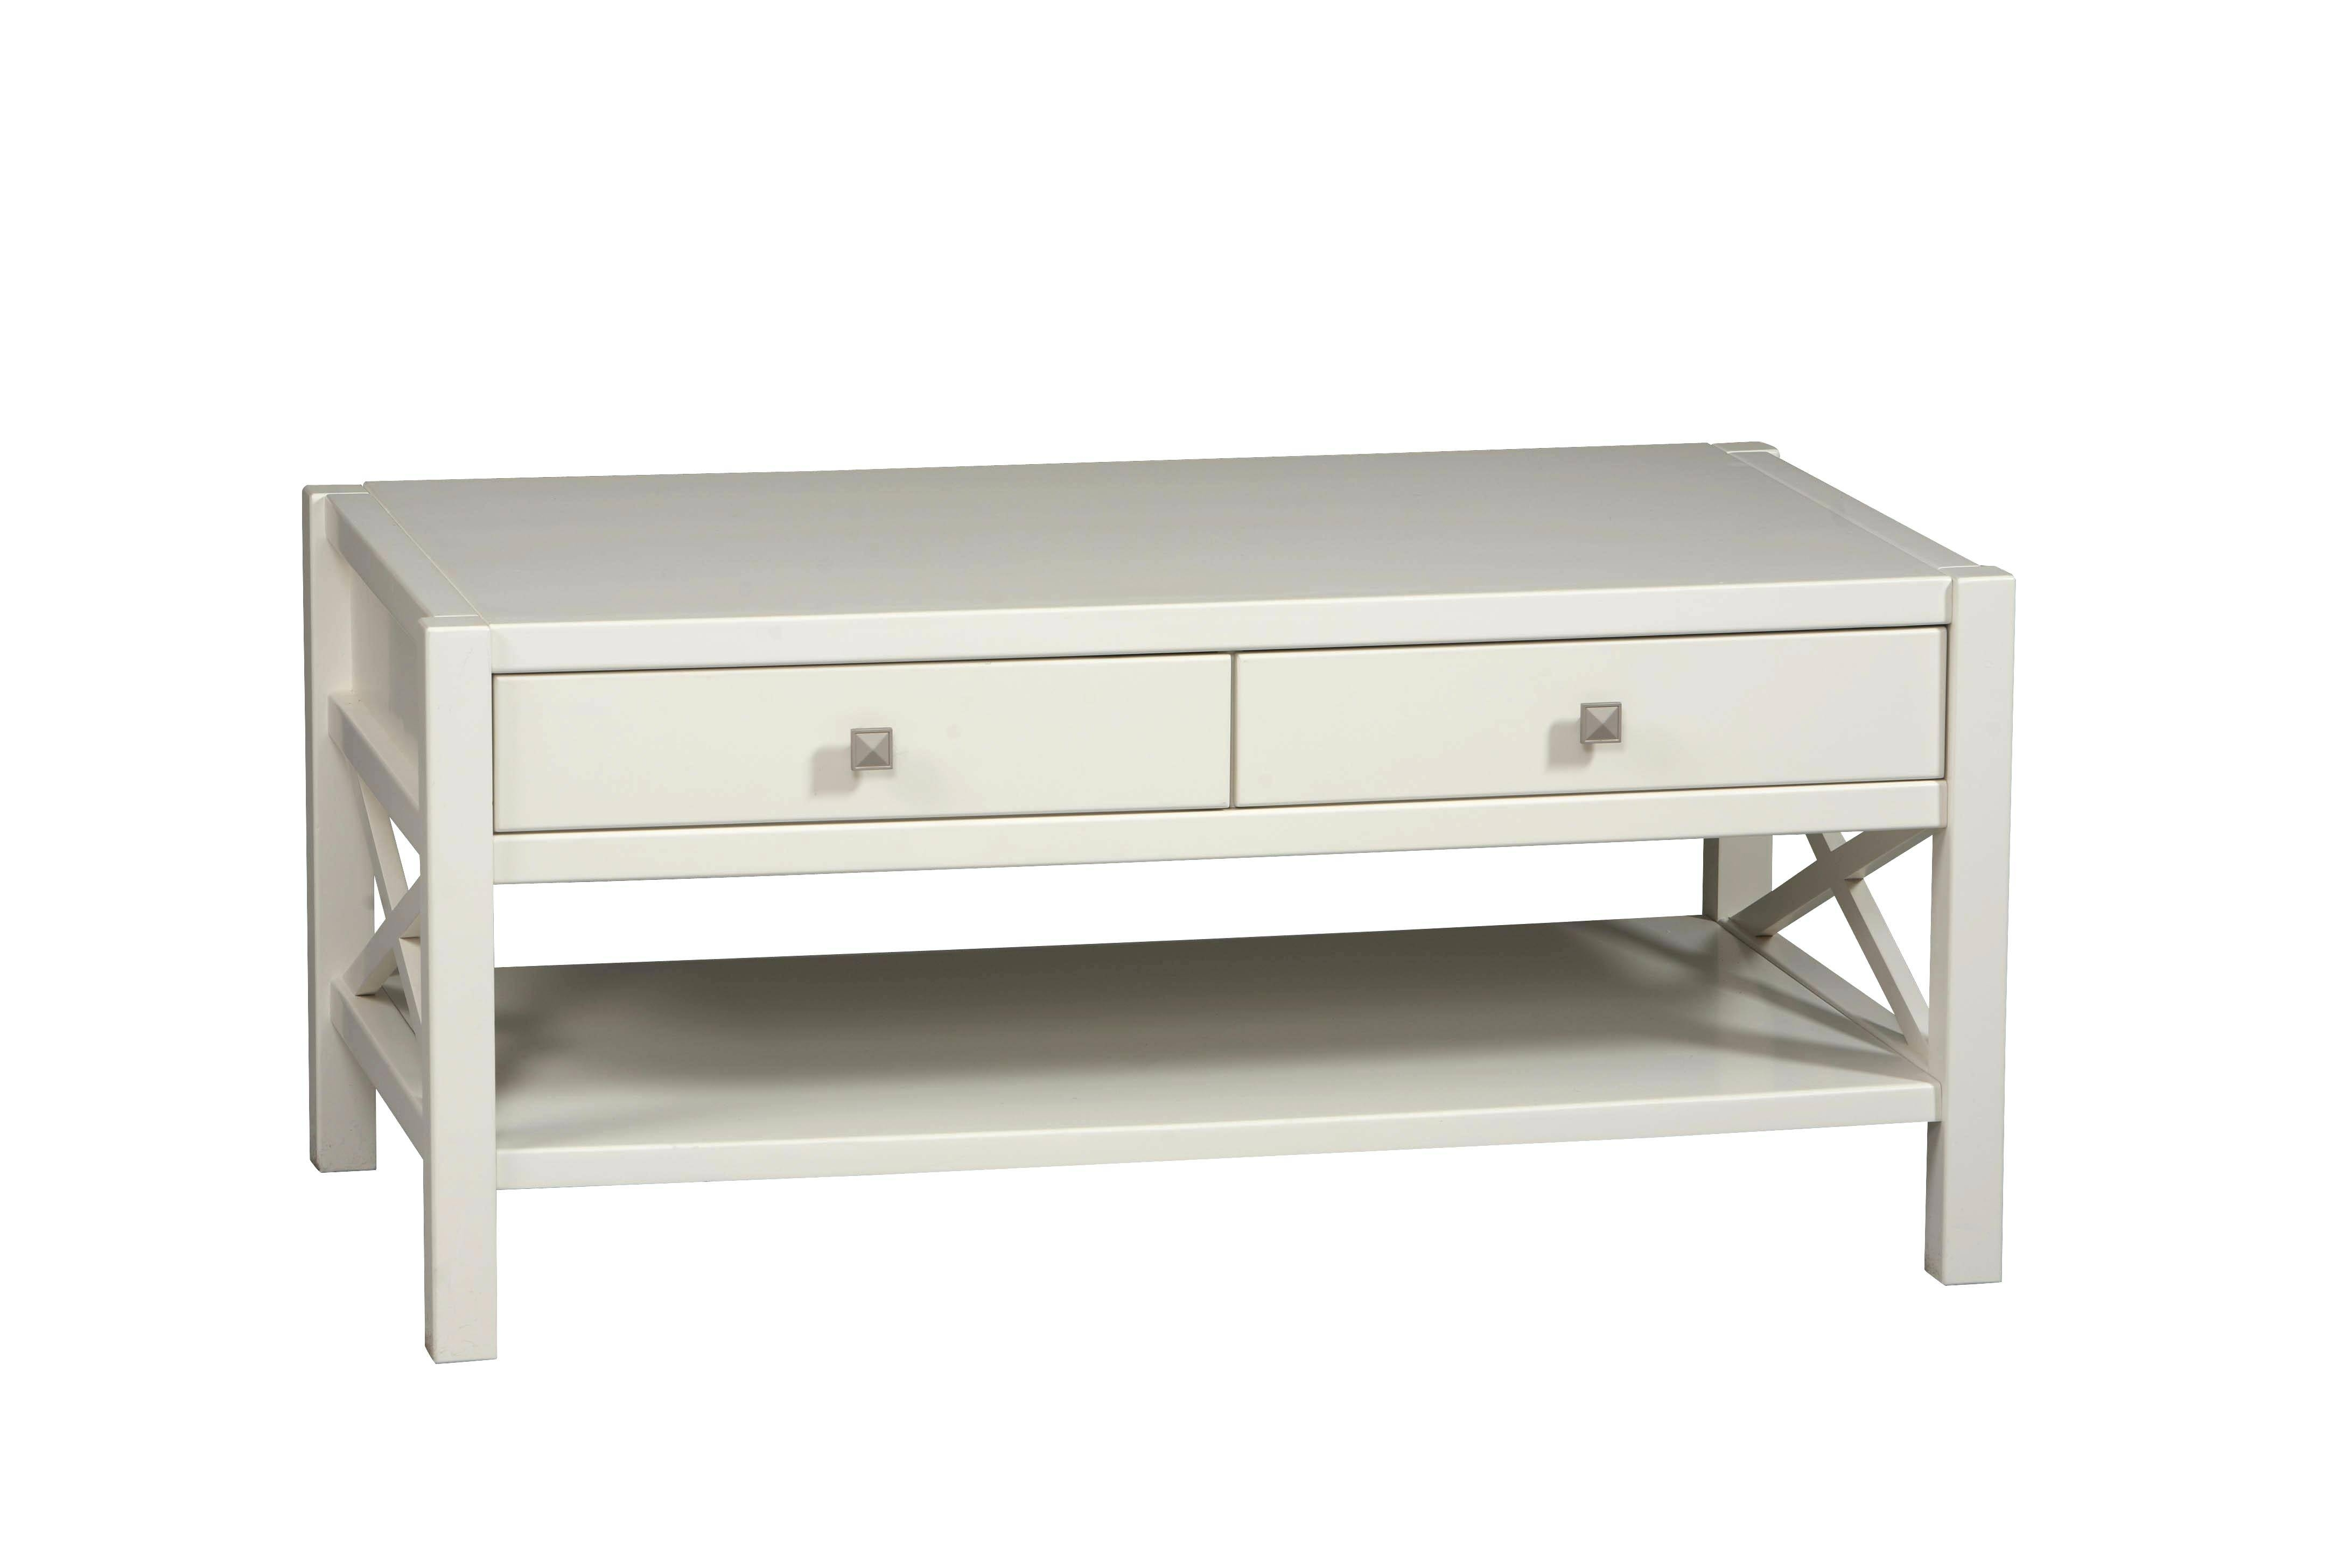 Coffee Table ~ Coffee Tableturnable White Table With Storage Has A in White Coffee Tables With Baskets (Image 7 of 30)